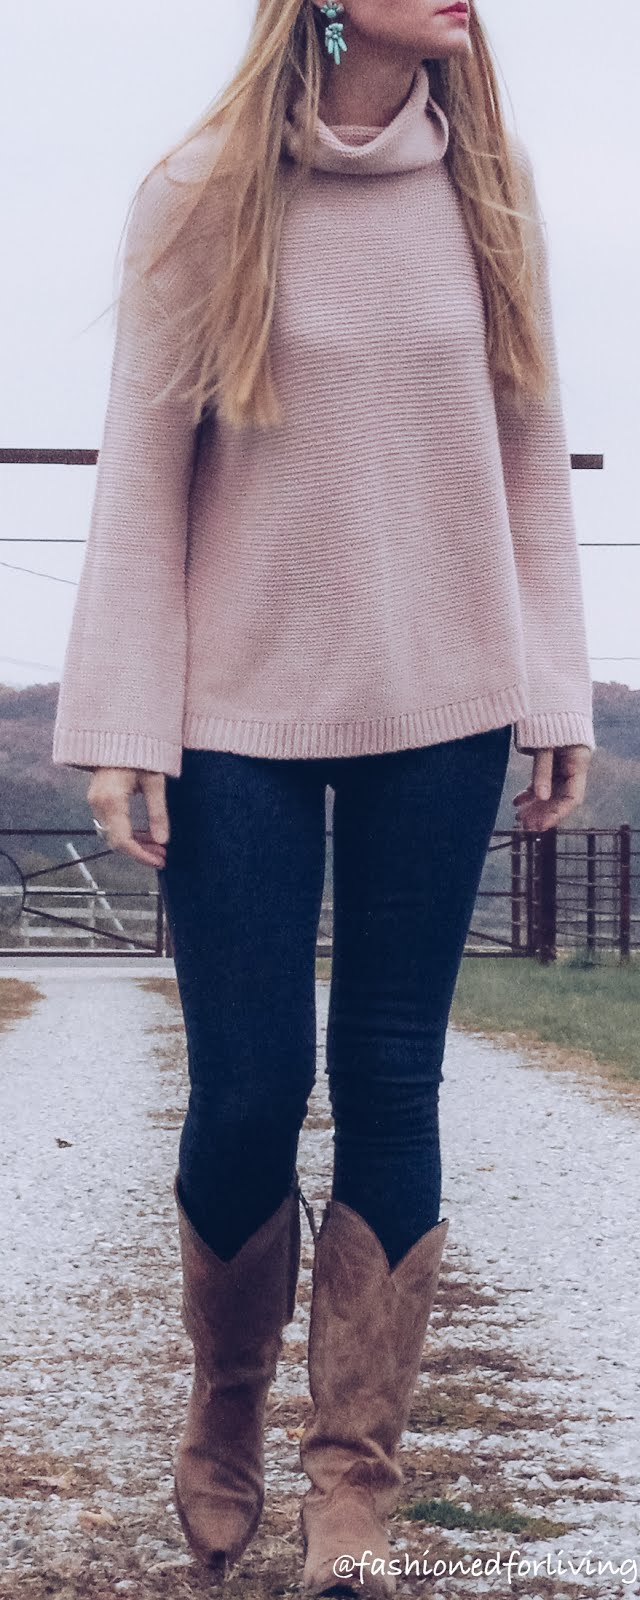 sweater and jeans outfit